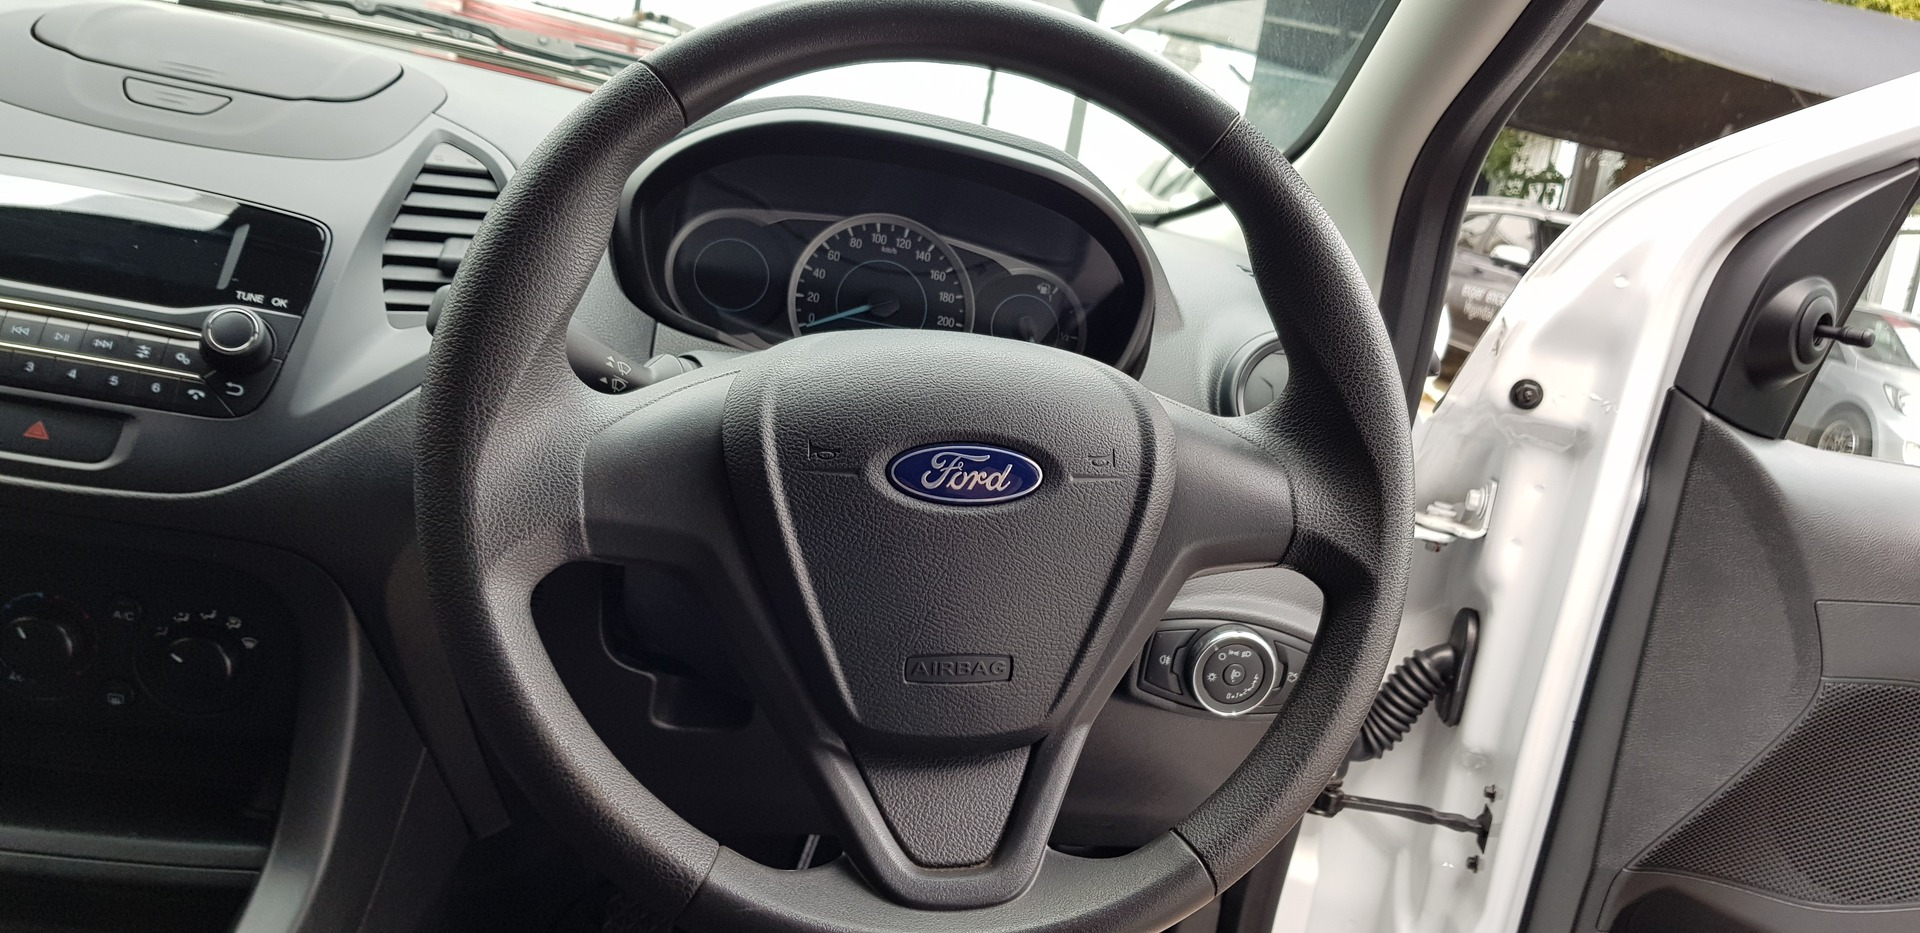 FORD 1.5Ti VCT AMBIENTE (5DR) Johannesburg 11332460